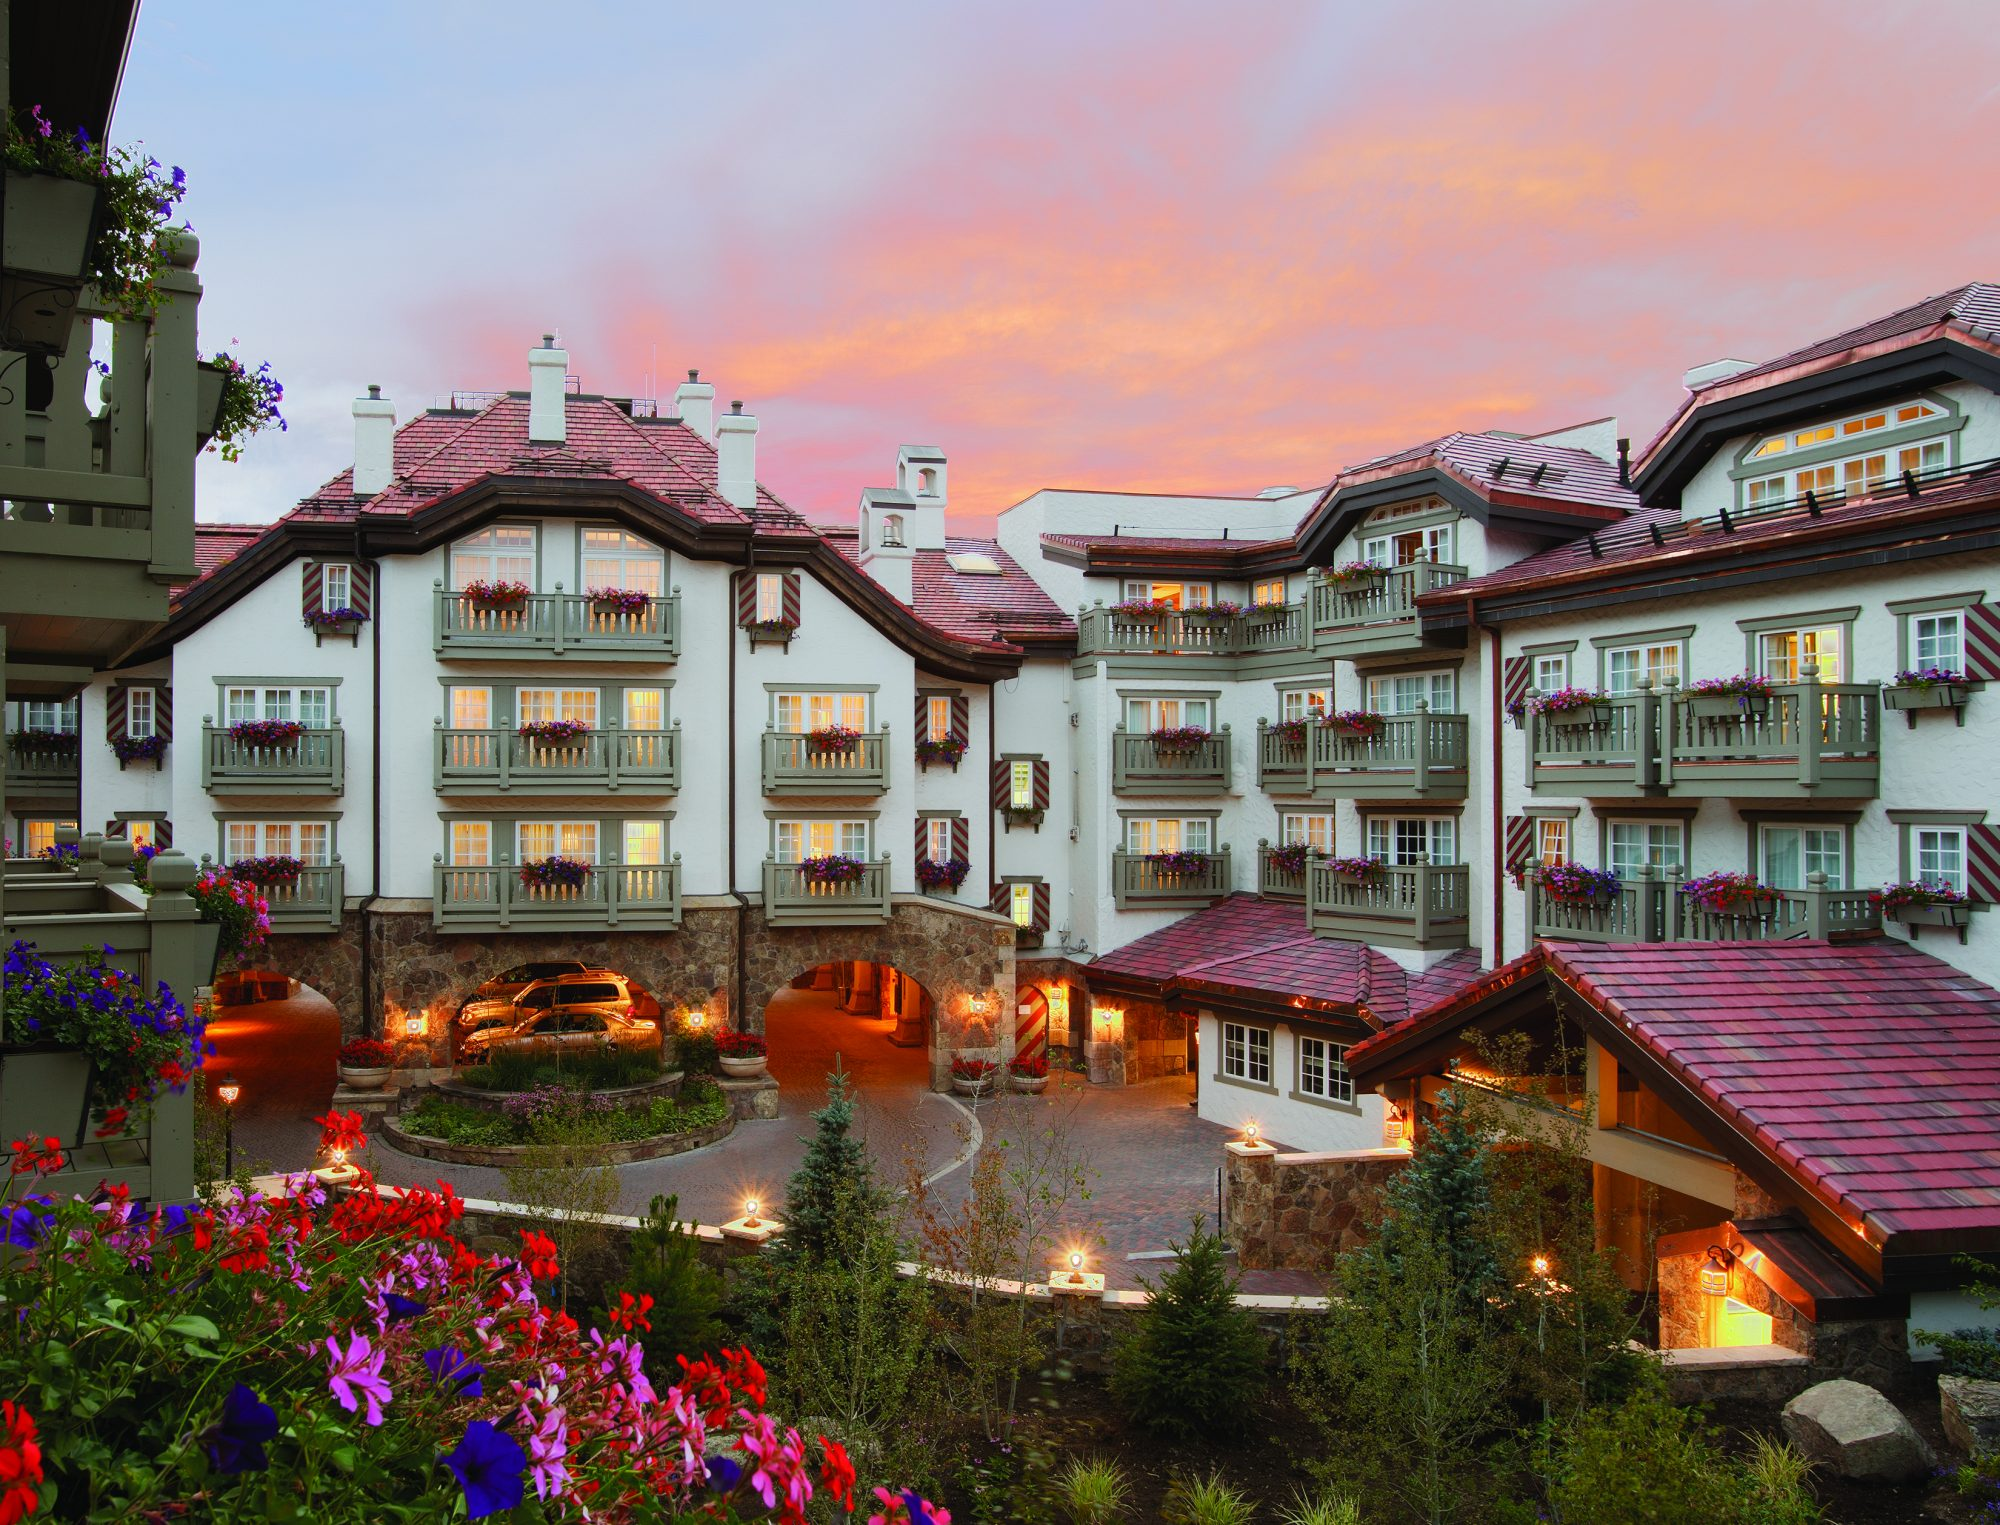 No. 15 Sonnenalp Hotel in Vail, Colorado